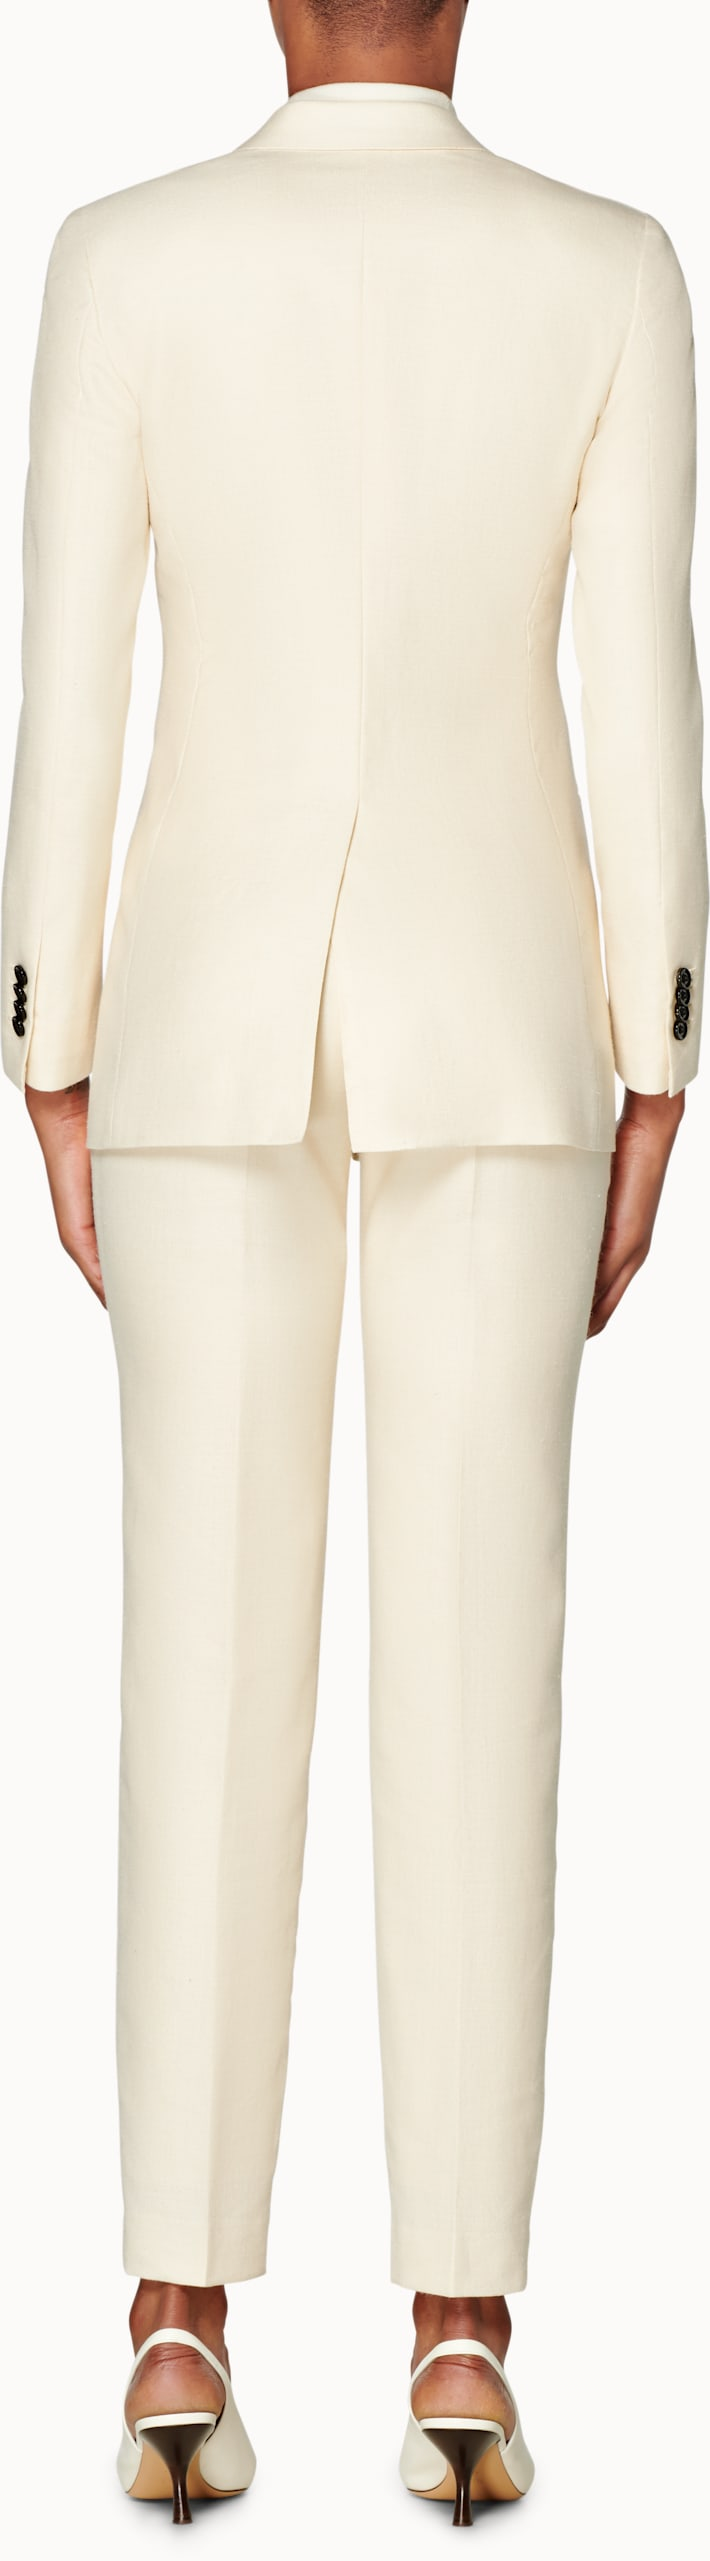 Cato Off White Suit